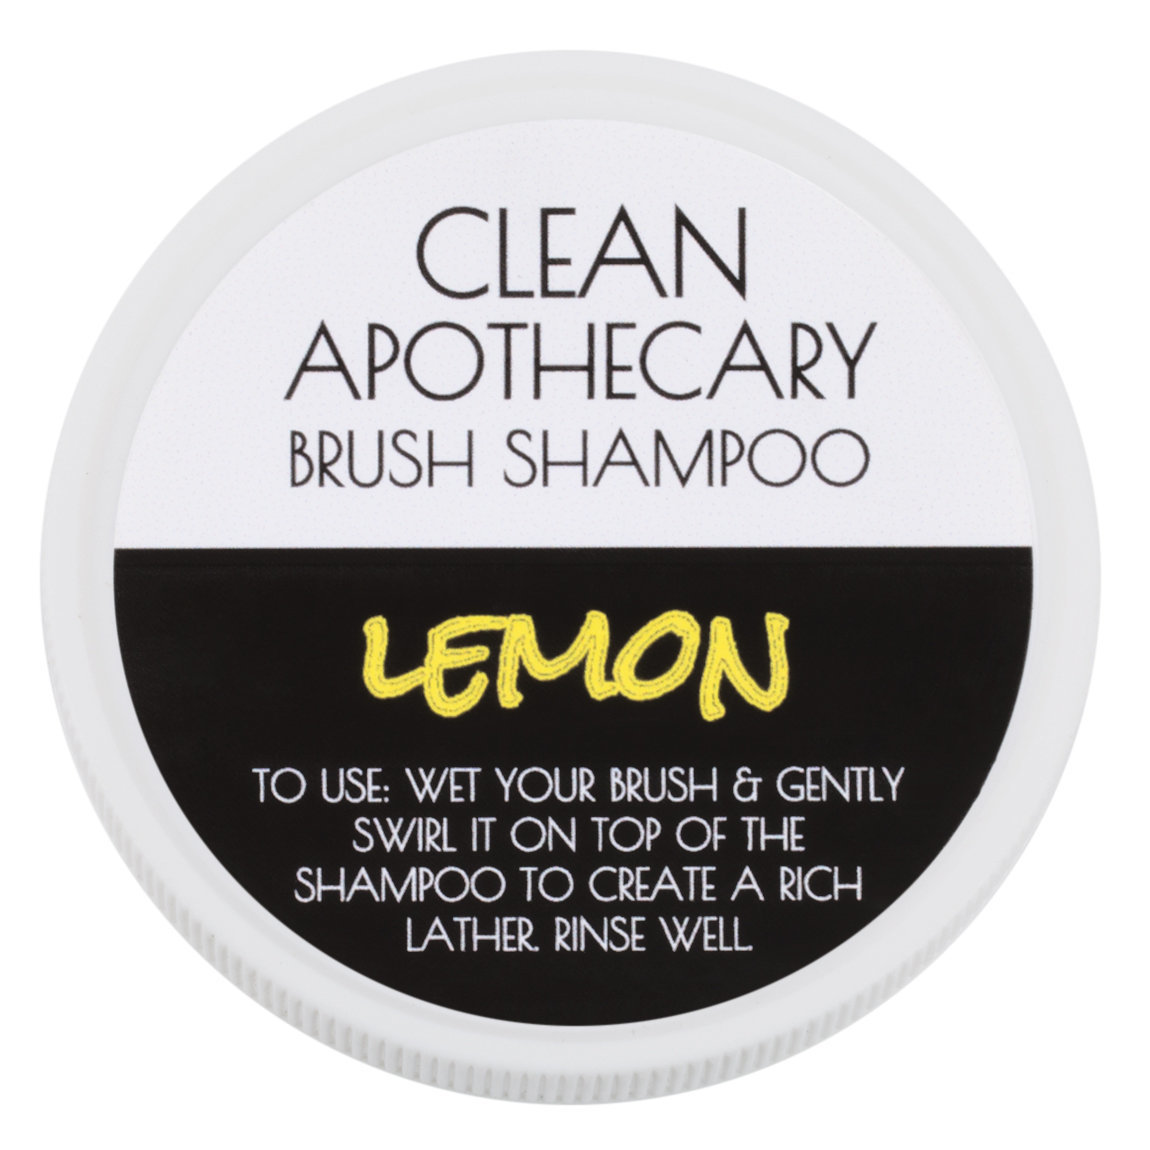 Clean Apothecary Brush Shampoo Lemon product smear.